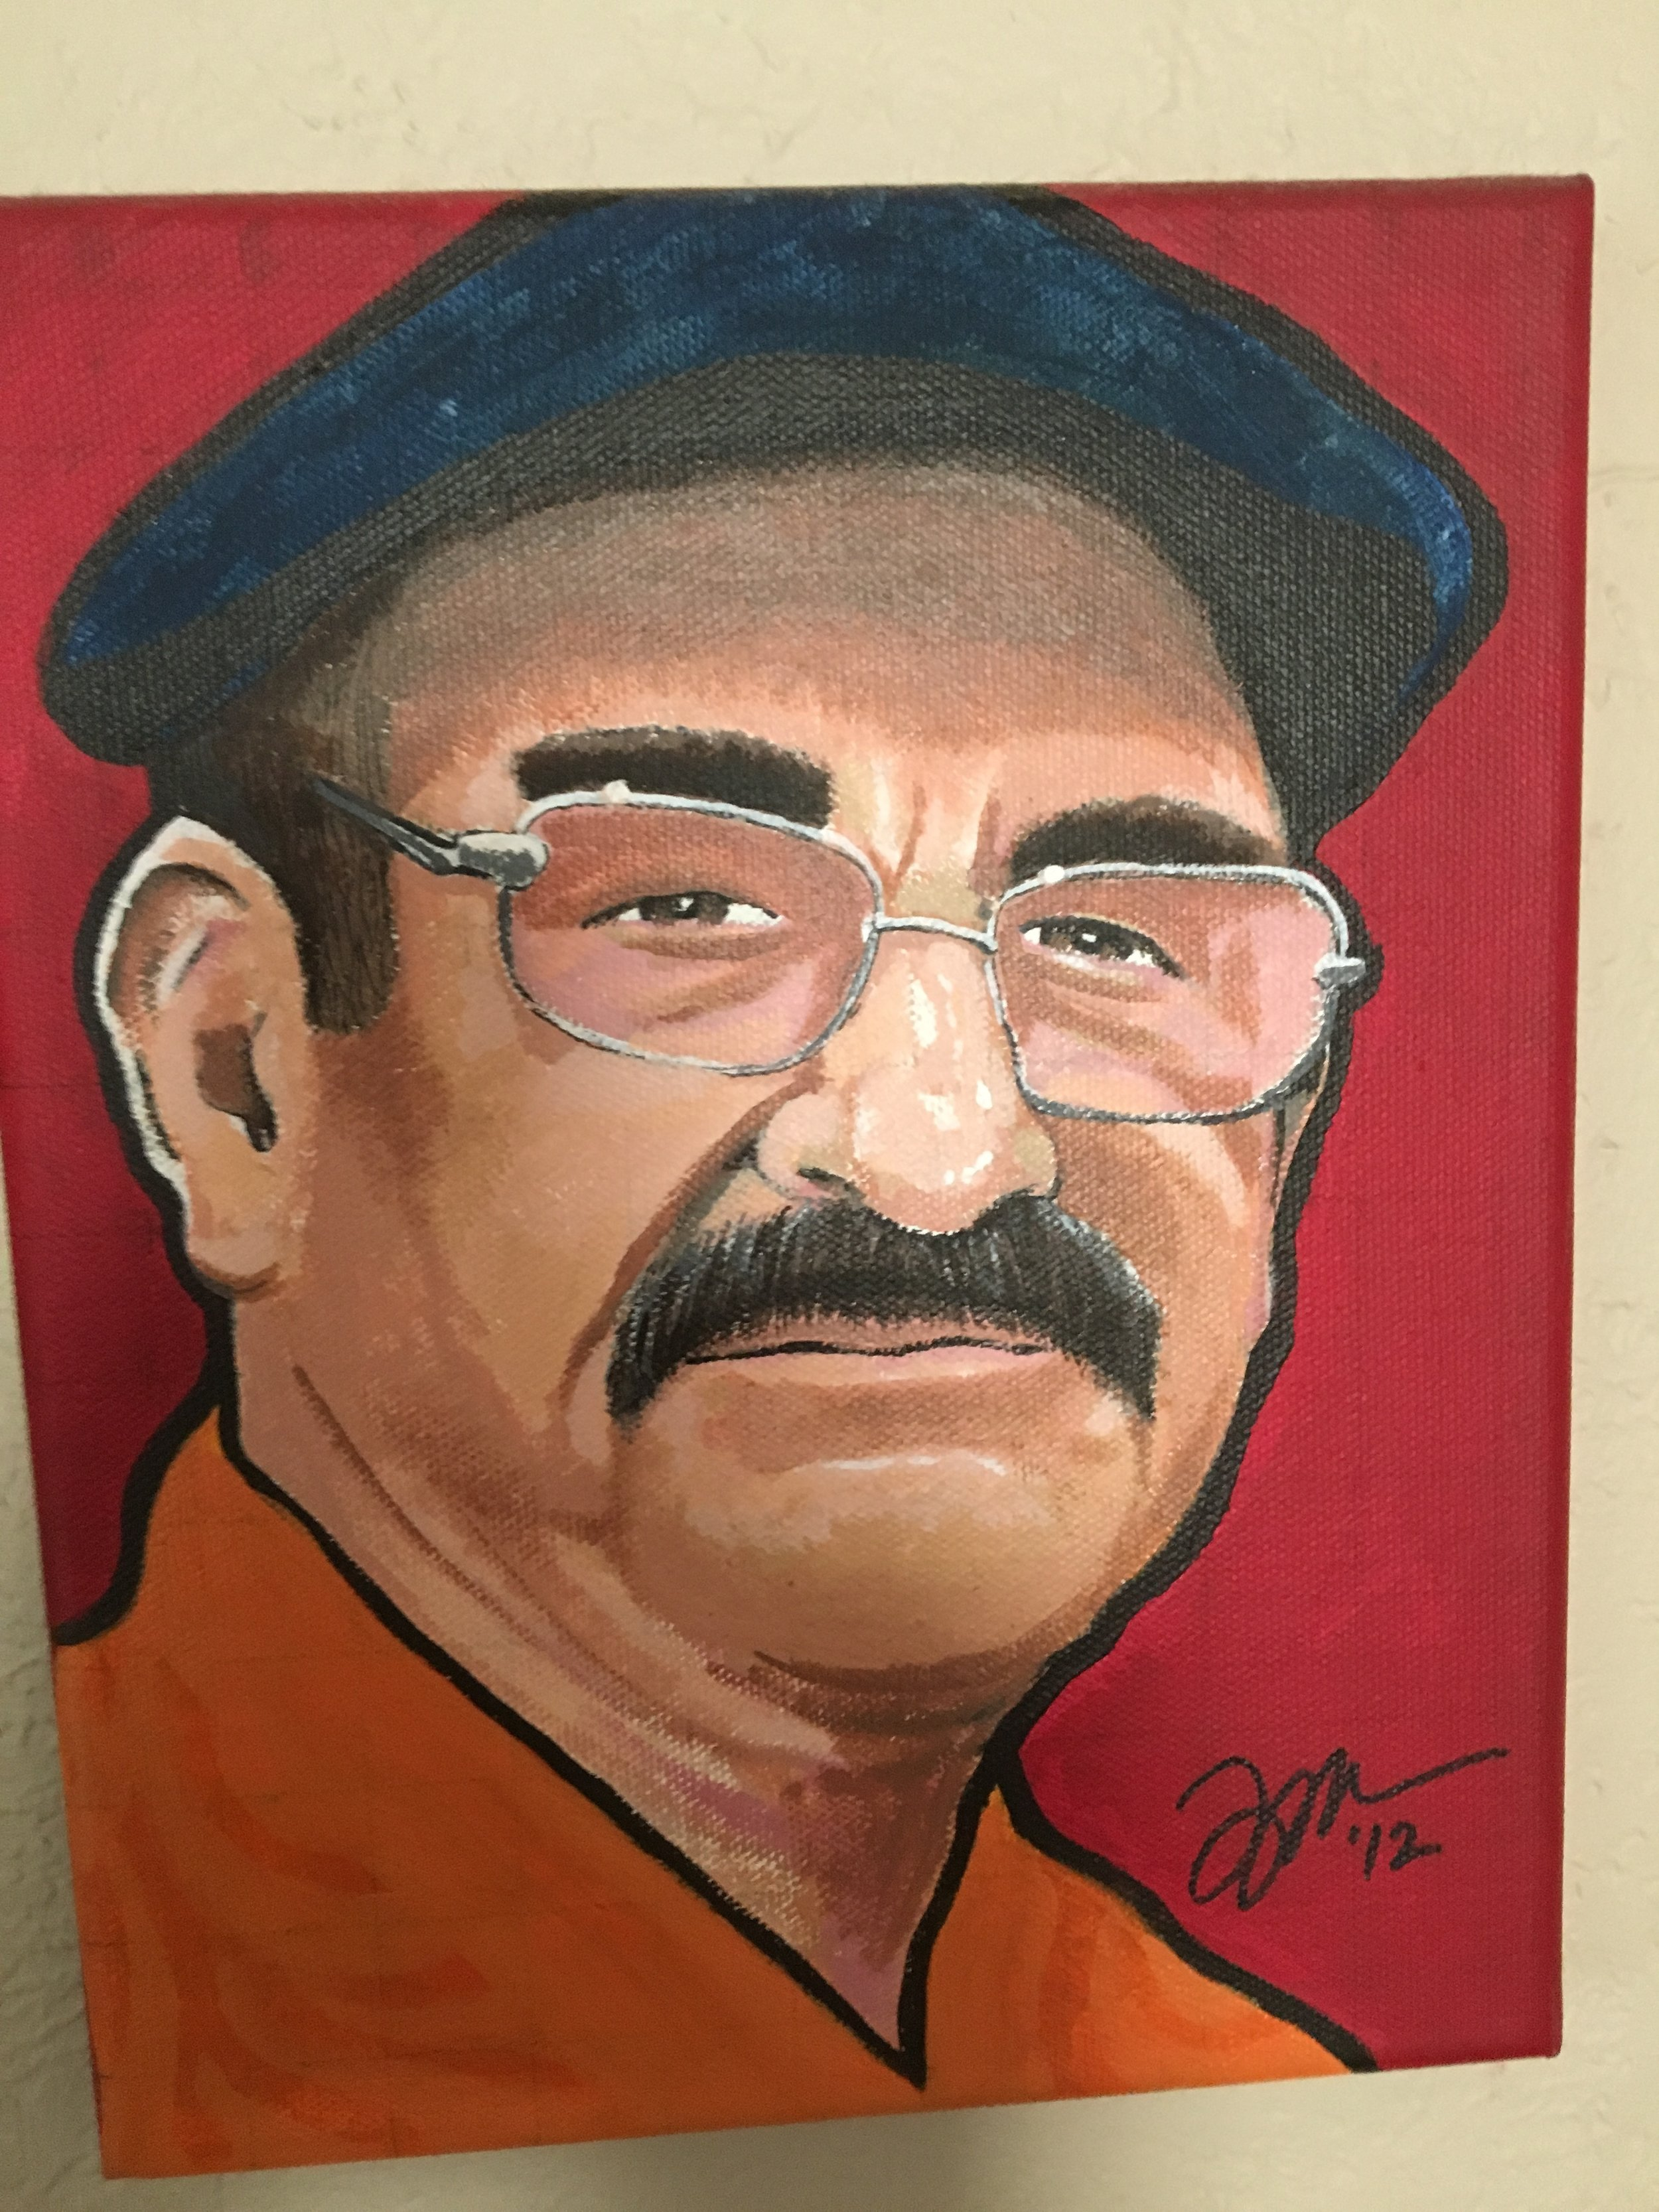 """Zamora, Gil.  Chente with cap.  2012. Arylic on canvas, 8"""" x 12"""". Private collection."""